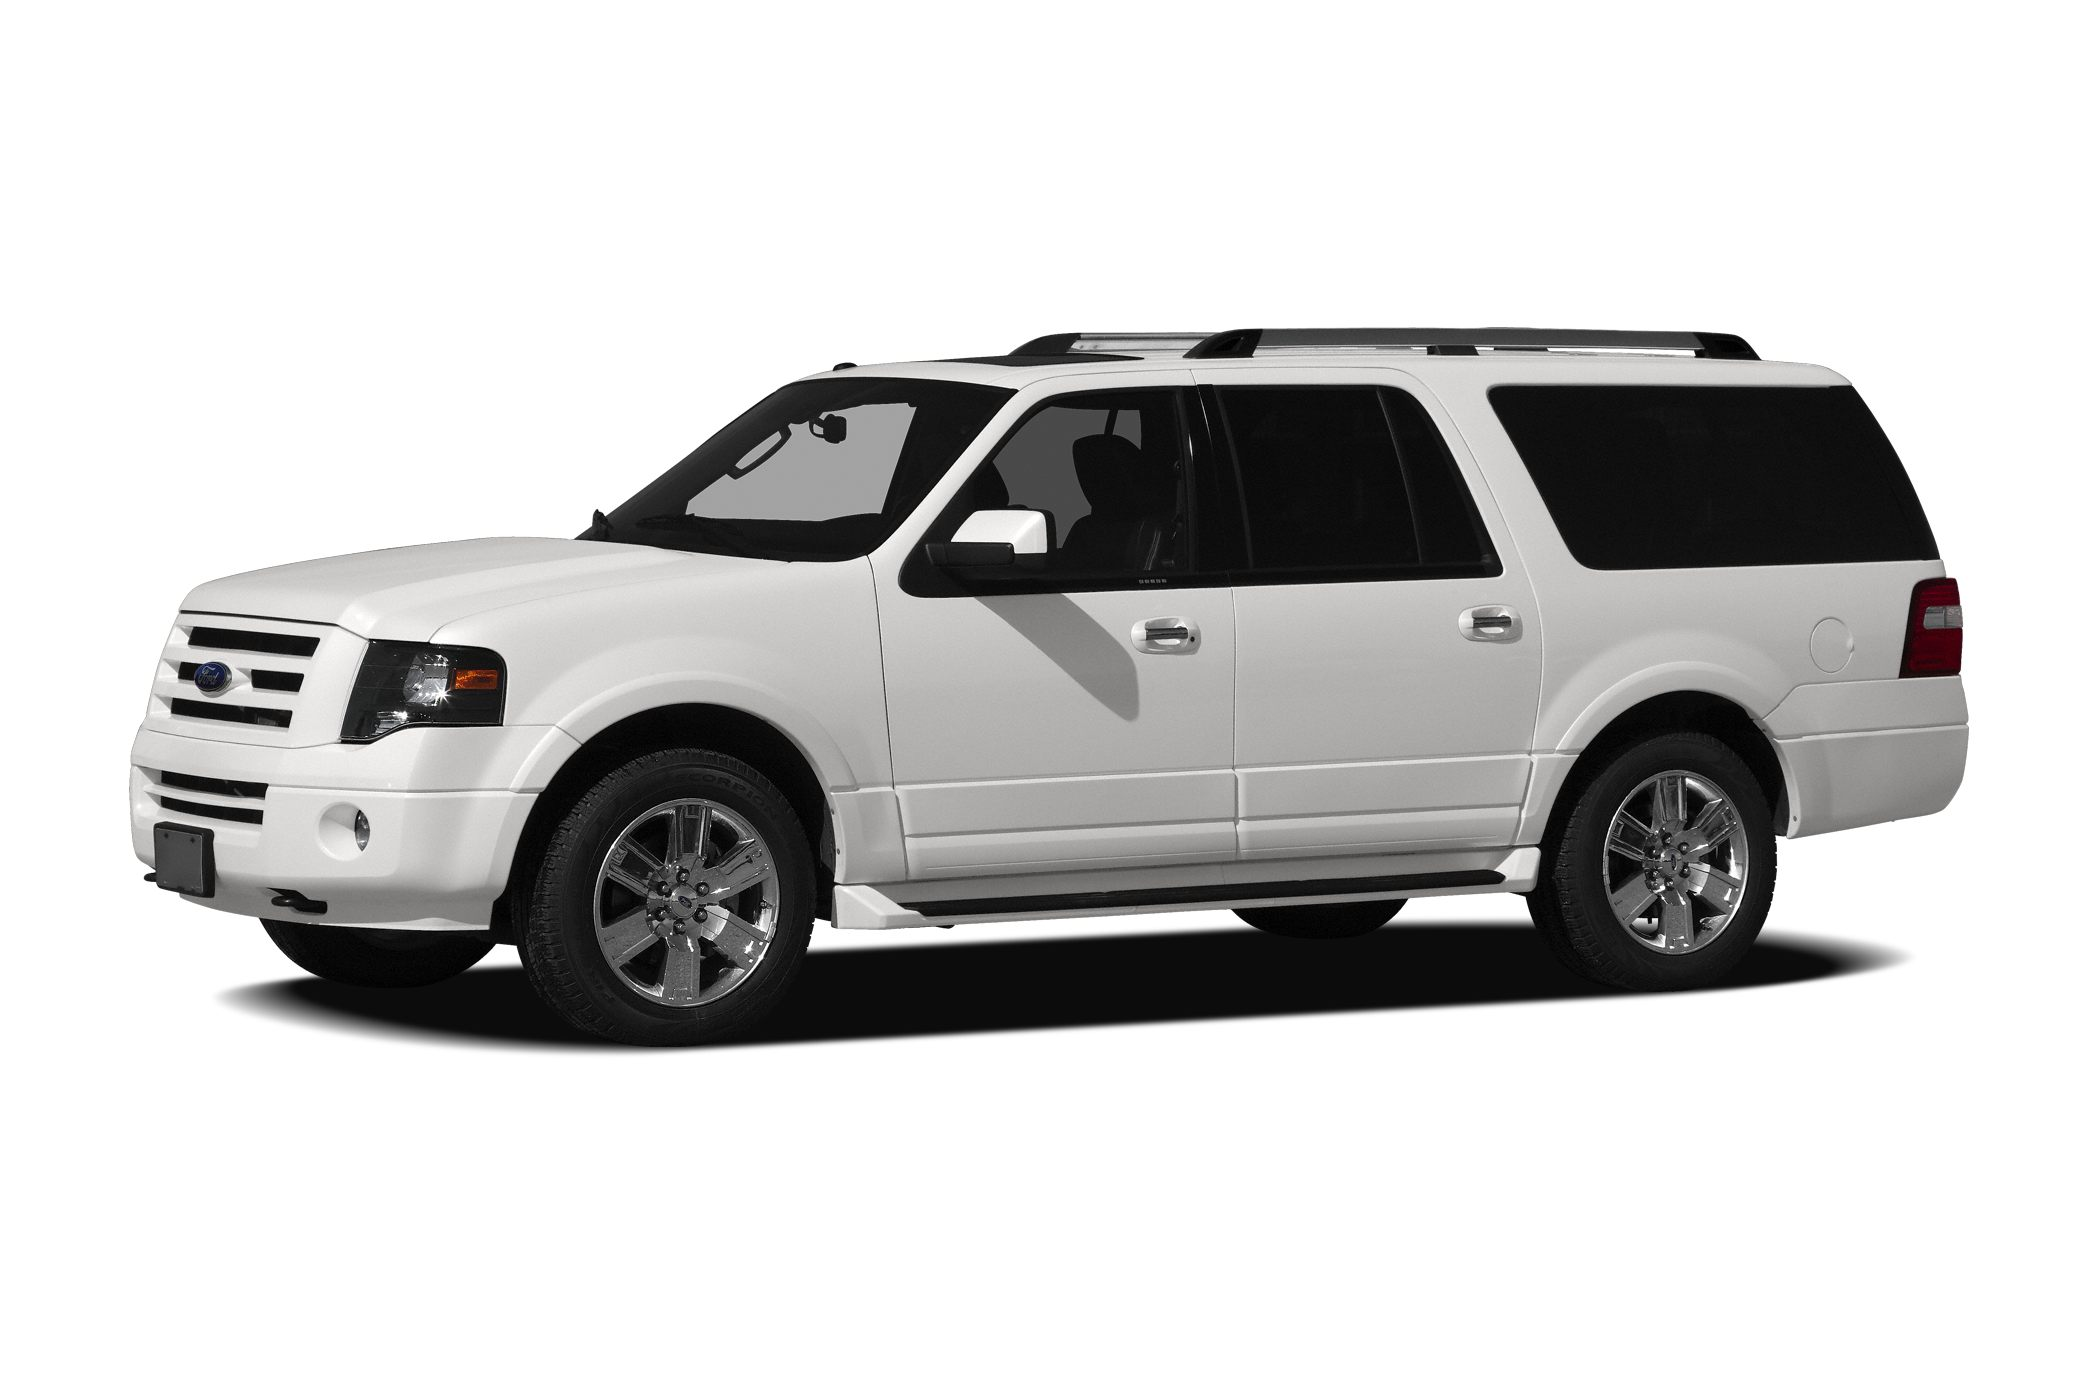 2011 Ford Expedition EL Limited BUY AND DRIVE WORRY FREE Own this CARFAX 1-Owner and Buyback Guar